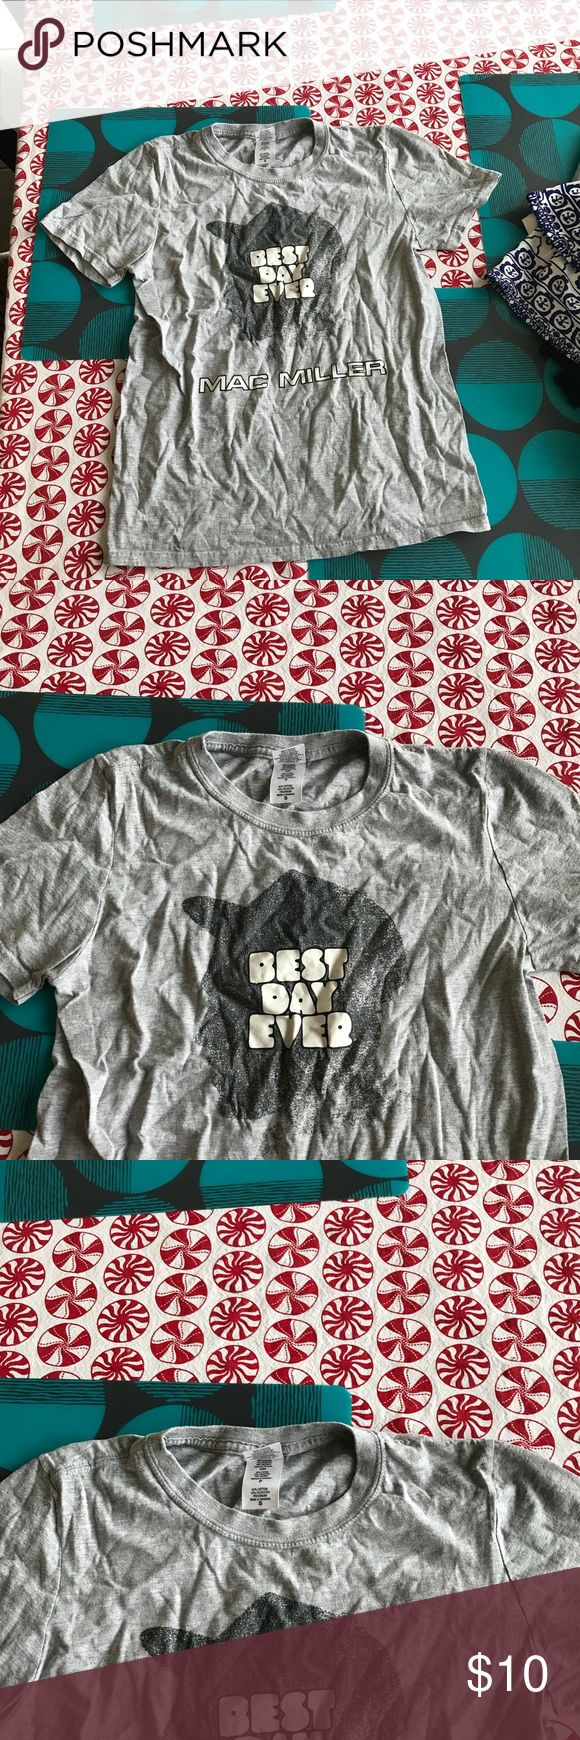 Mac Miller best day ever T-shirt Brand new unfortunately there are no tags. In great condition please ask all questions before purchasing. Just a regular cotton T-shirt with the MAC MILLER best day ever album design on the front Tops Tees - Short Sleeve